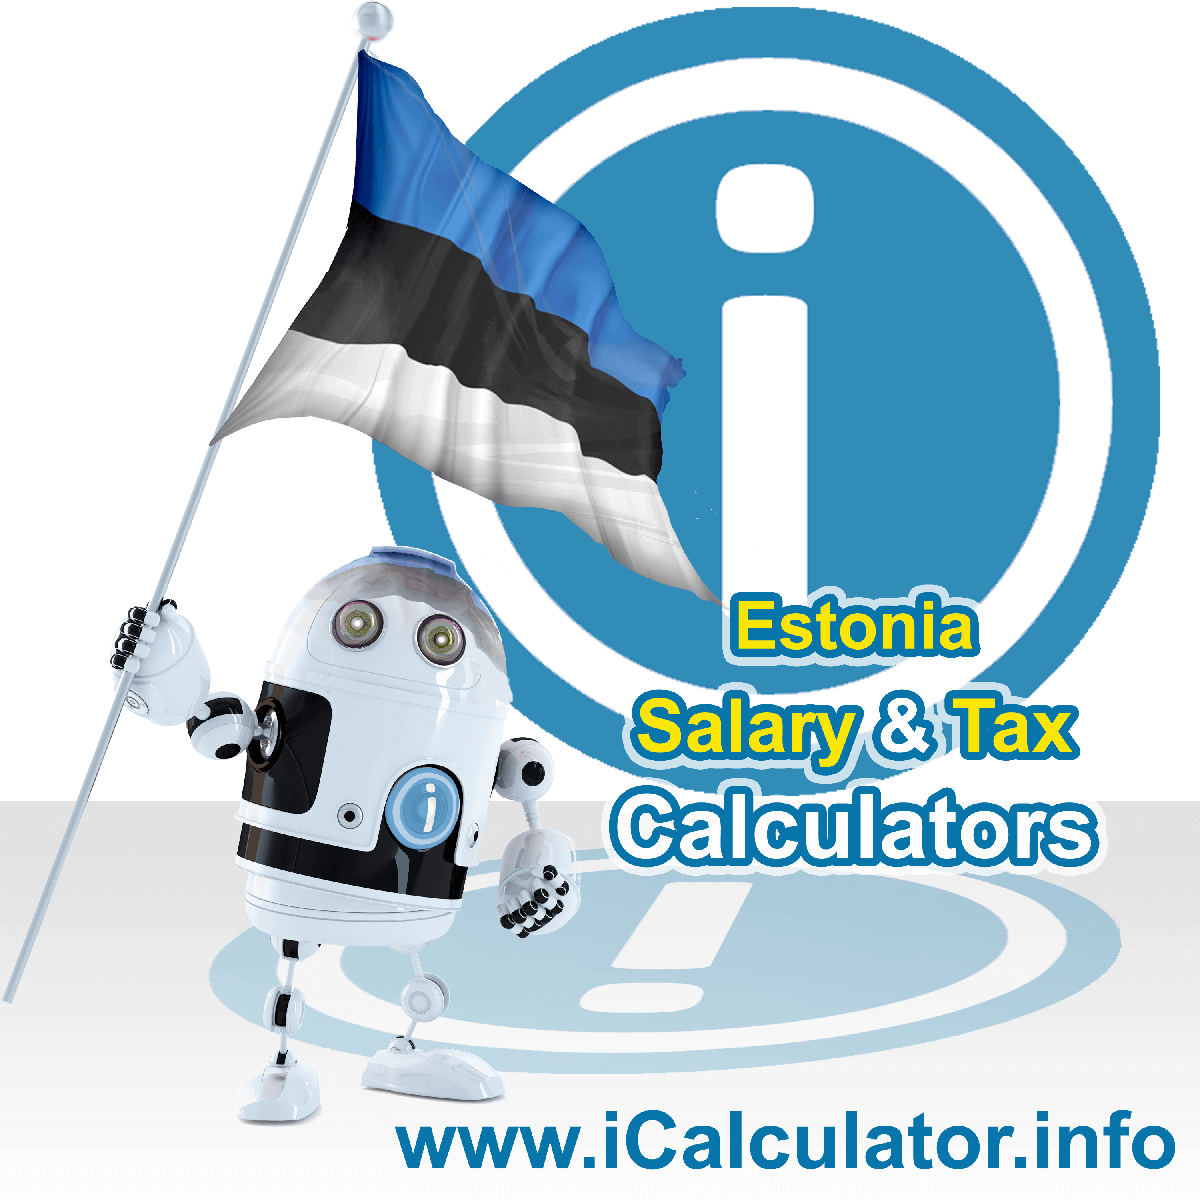 Estonia Wage Calculator. This image shows the Estonia flag and information relating to the tax formula for the Estonia Tax Calculator